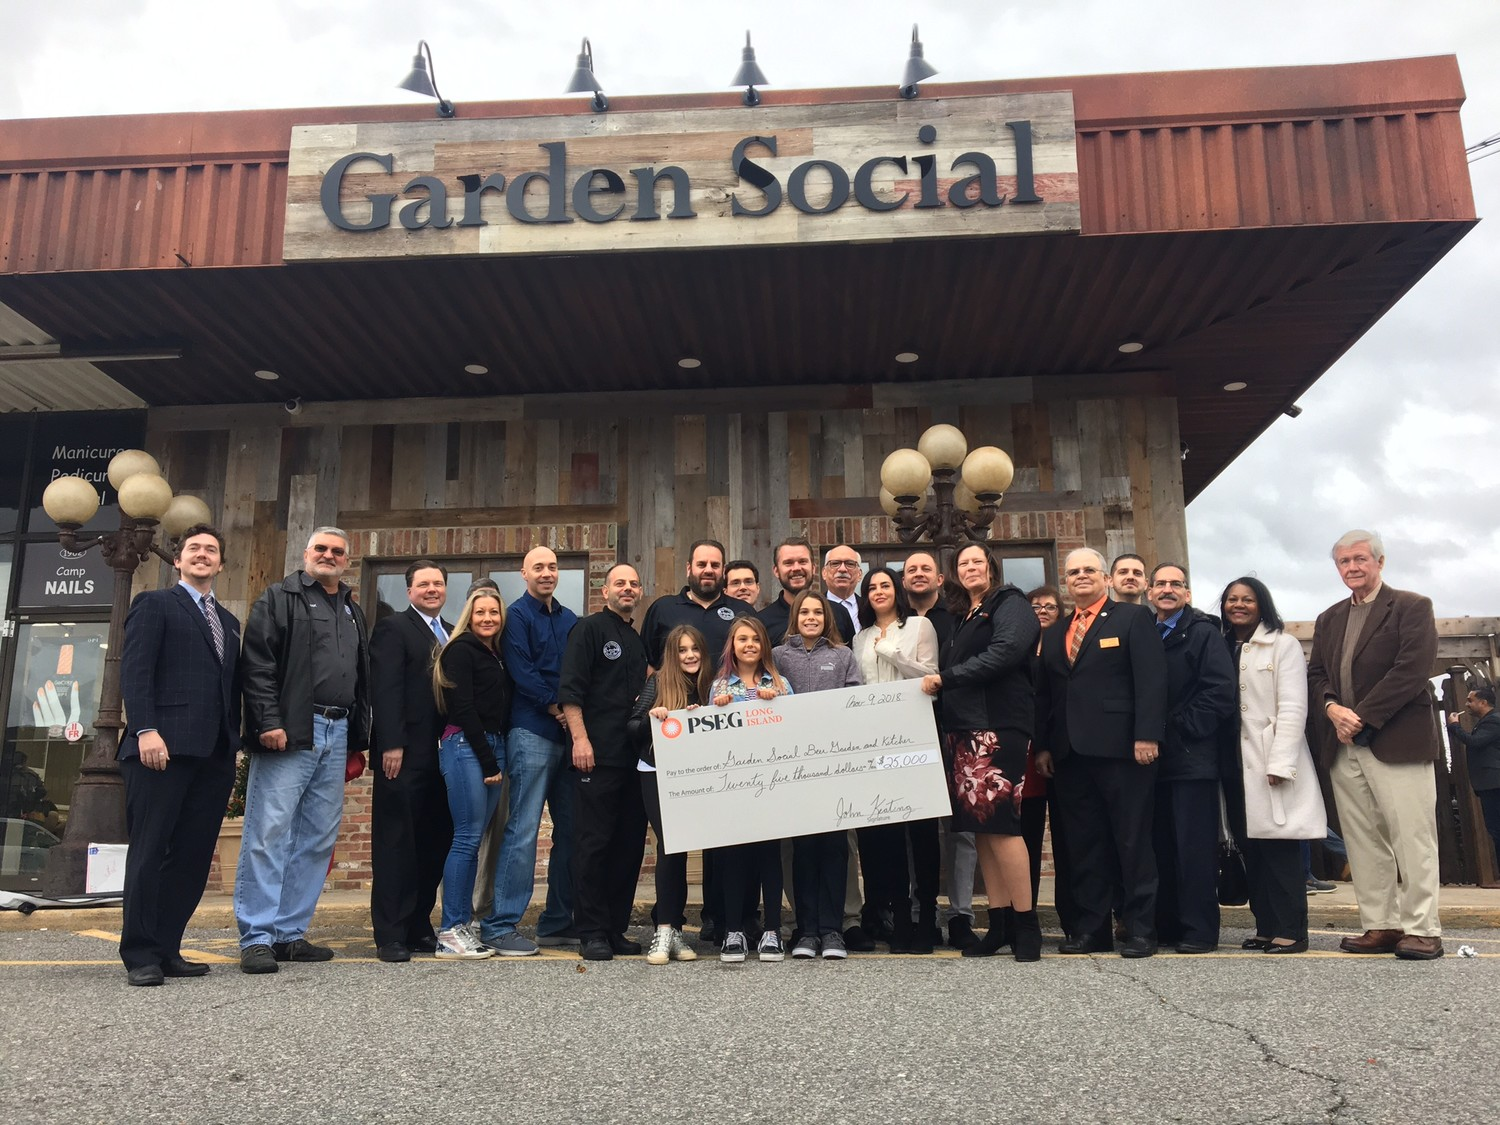 Because of their efforts to renovate the storefront and beautify the business district, Garden Social received two grants from PSEG Long Island totaling $25,000 and hundreds of dollars in rebates.